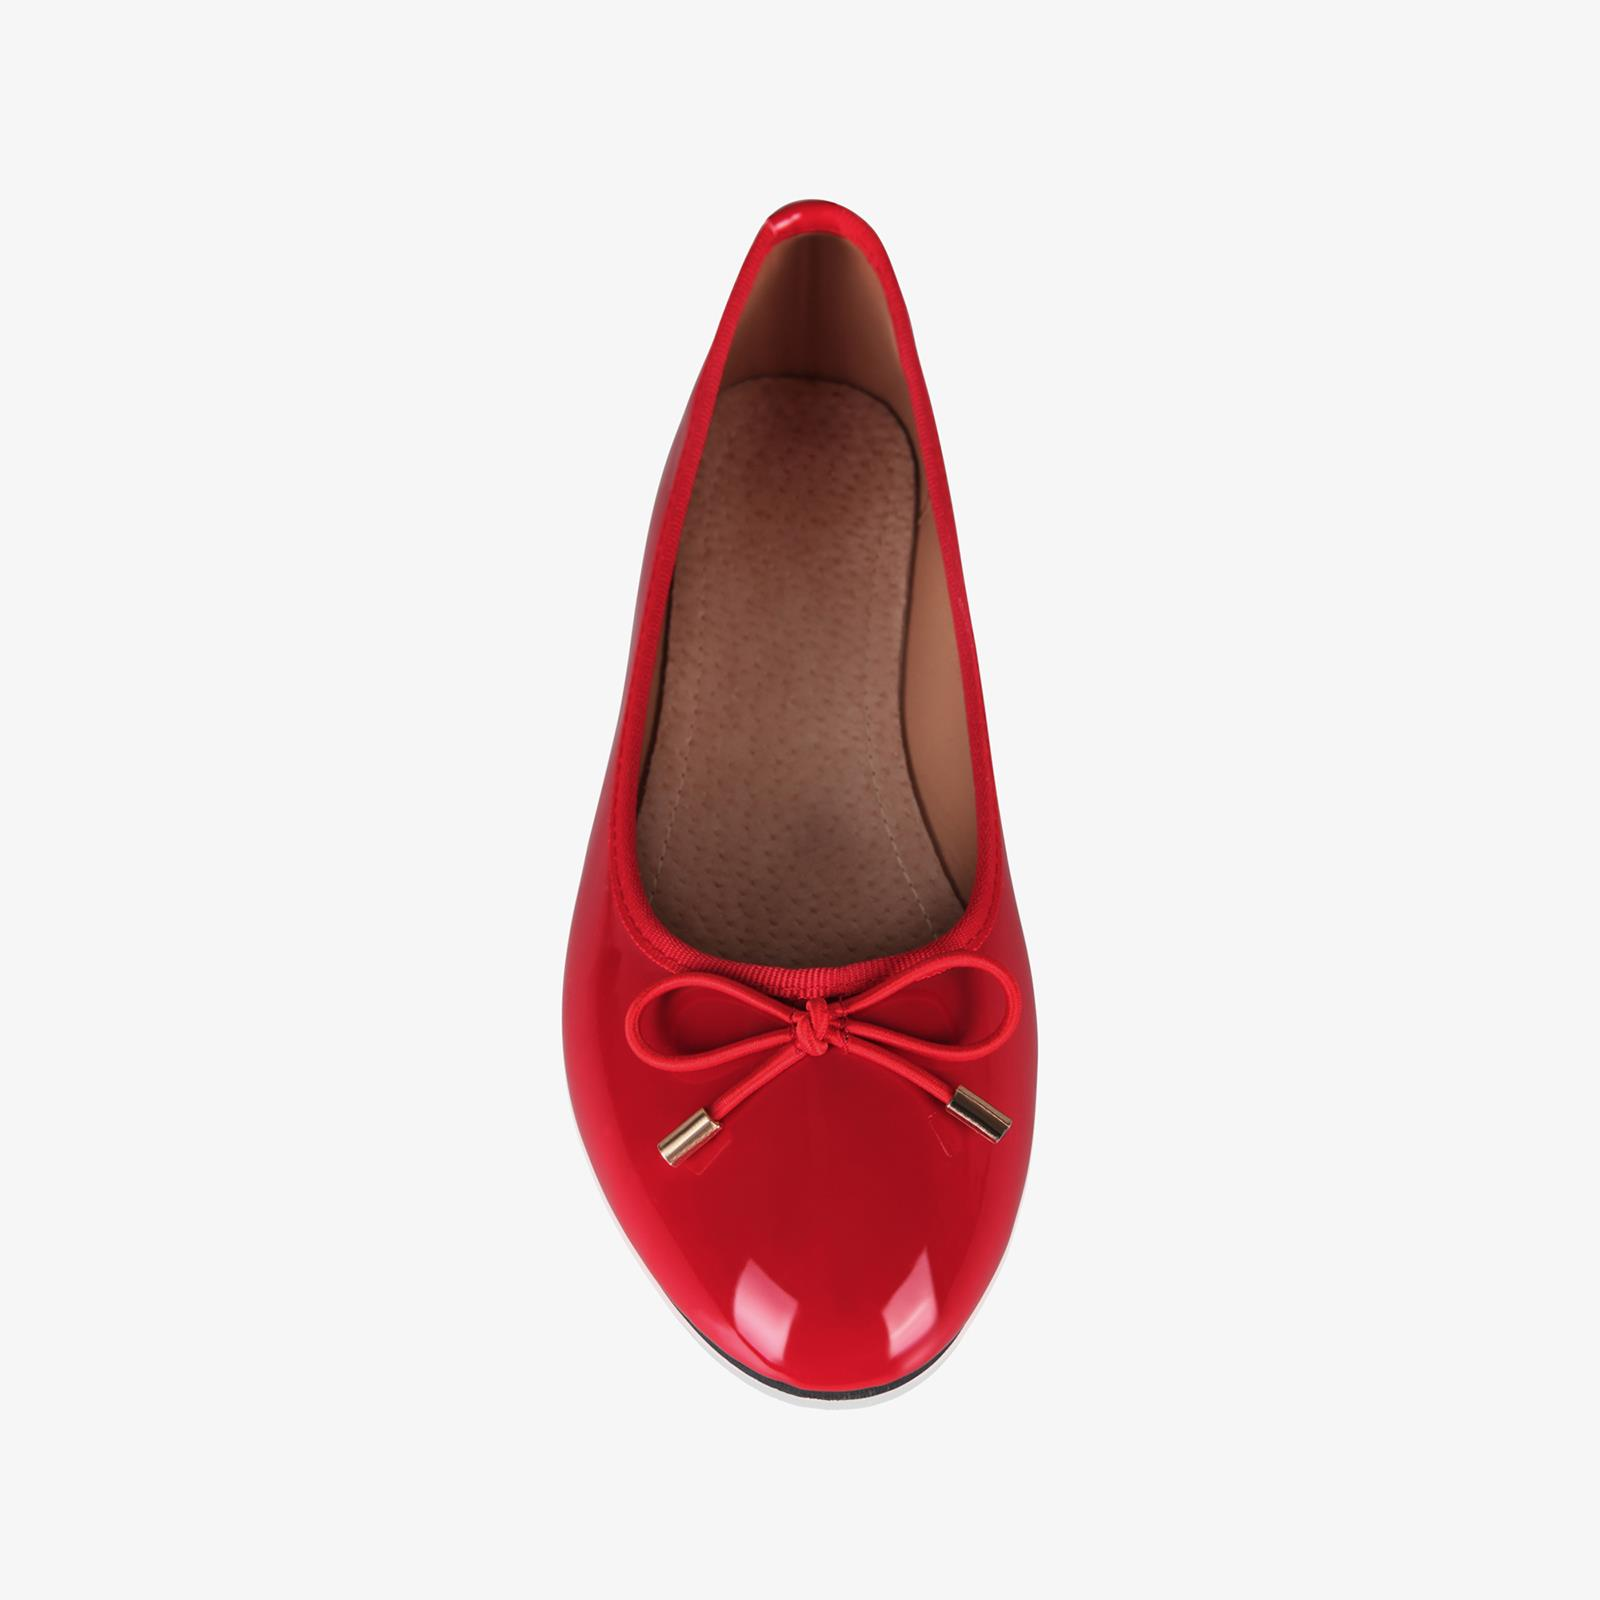 Womens-Ladies-Patent-Flat-Shoes-Ballerina-Ballet-Dolly-Court-Pumps-Slip-On-Bow thumbnail 12